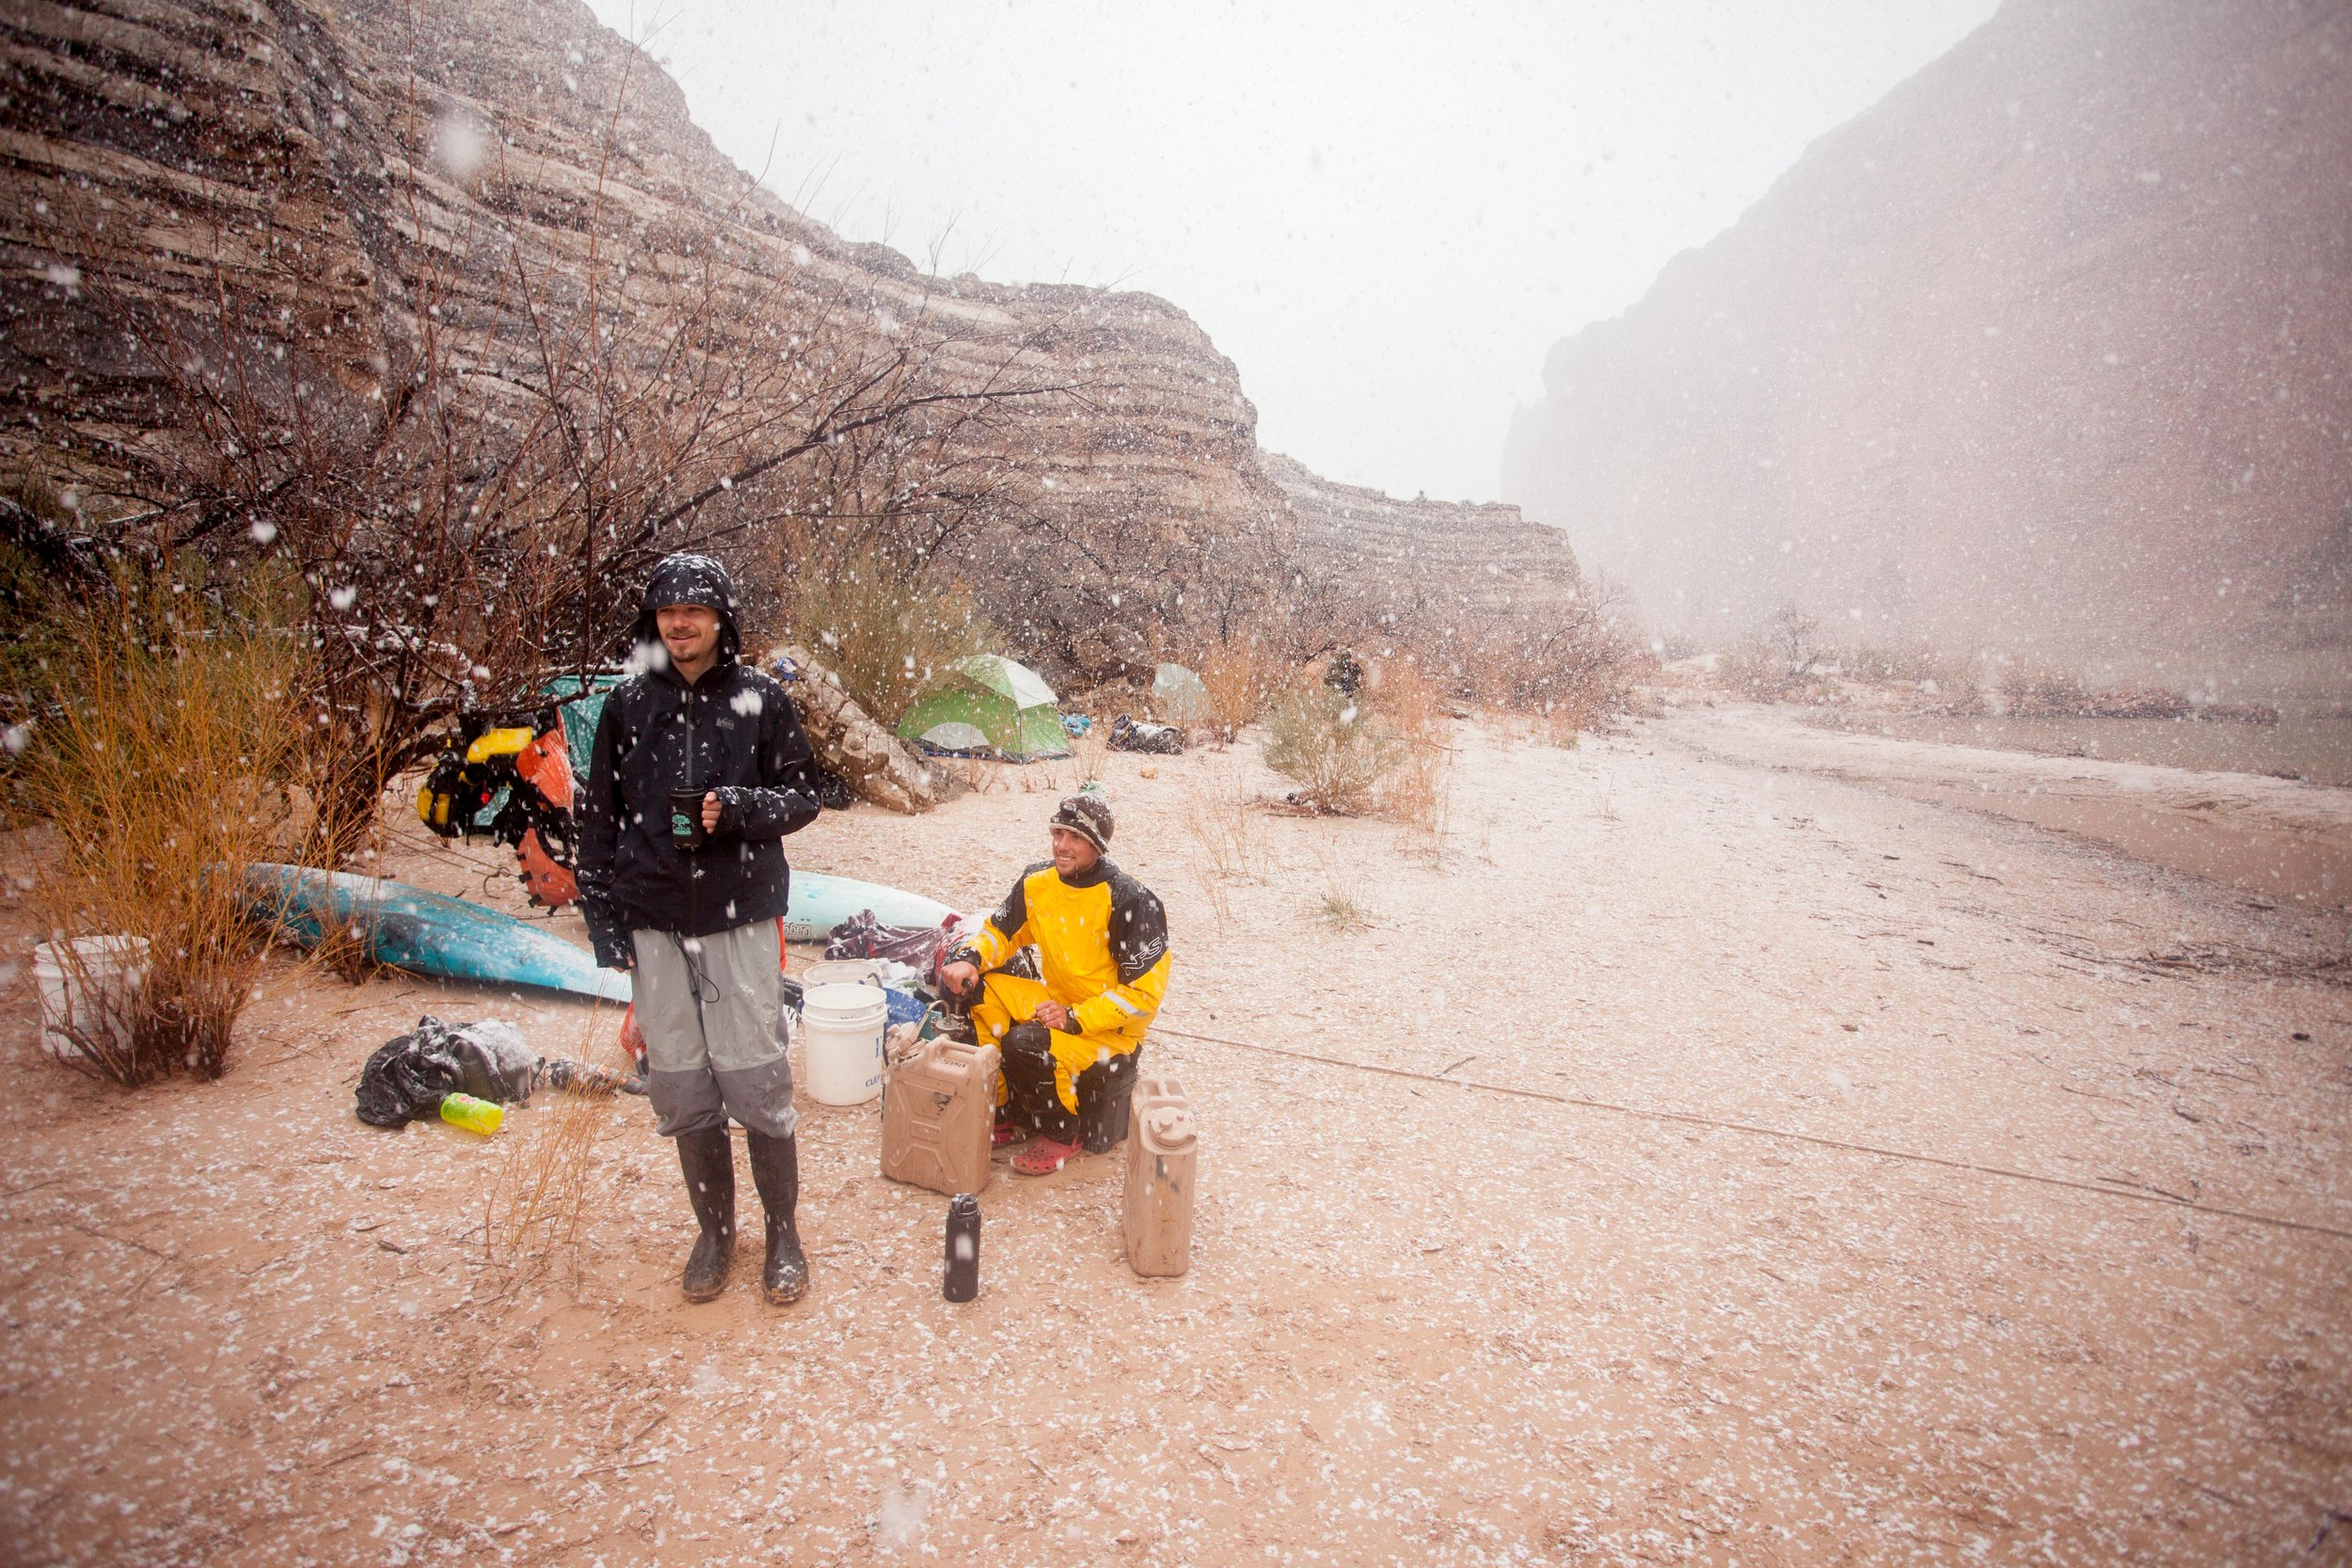 Heavy snowfall in the canyon - the joys of a mid-February float trip.